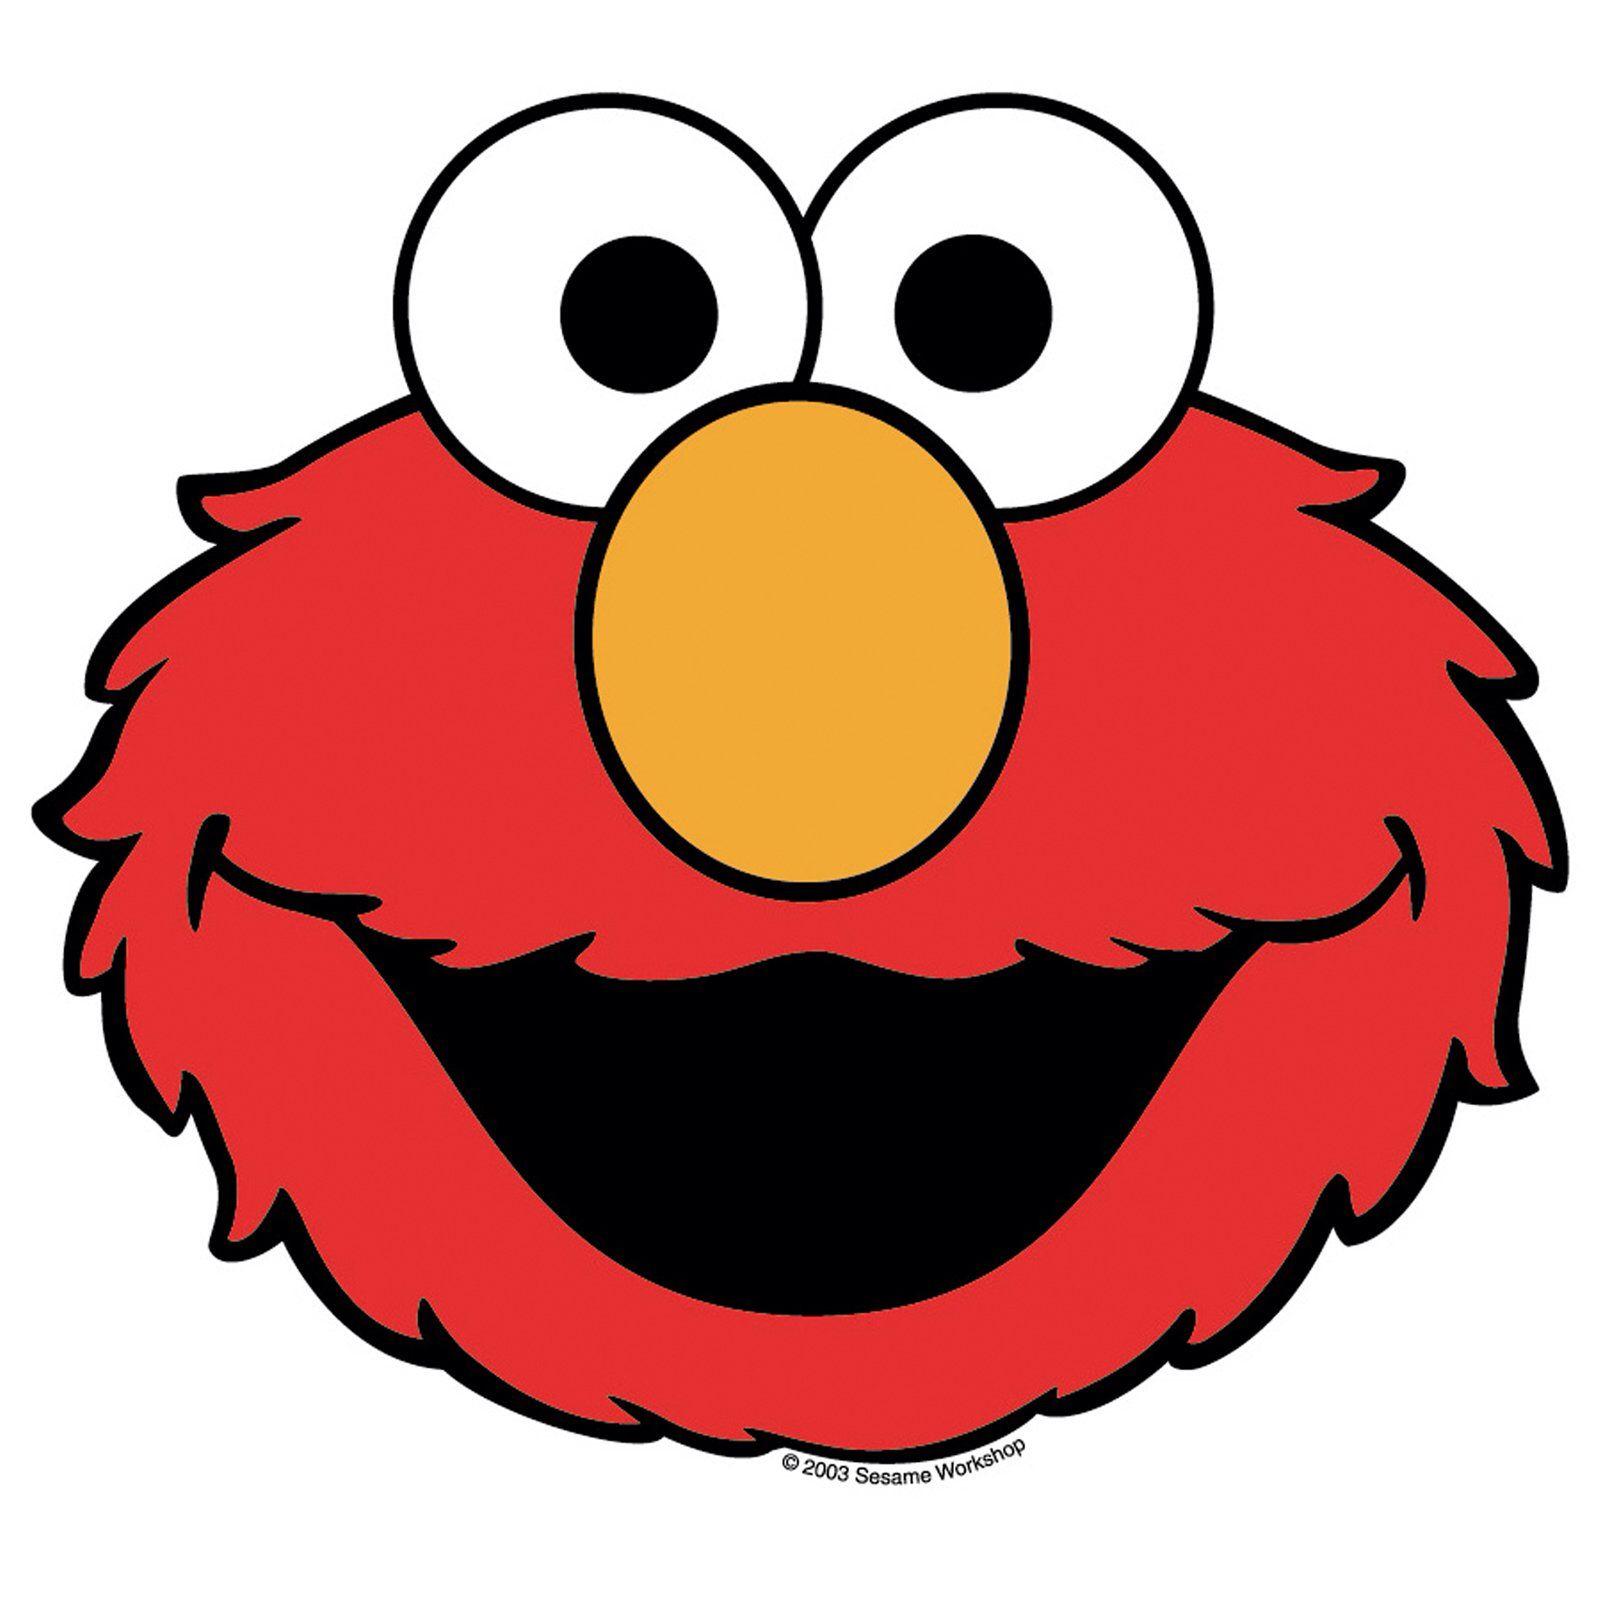 elmo template for cake elmo template cake tutorials pinterest elmo